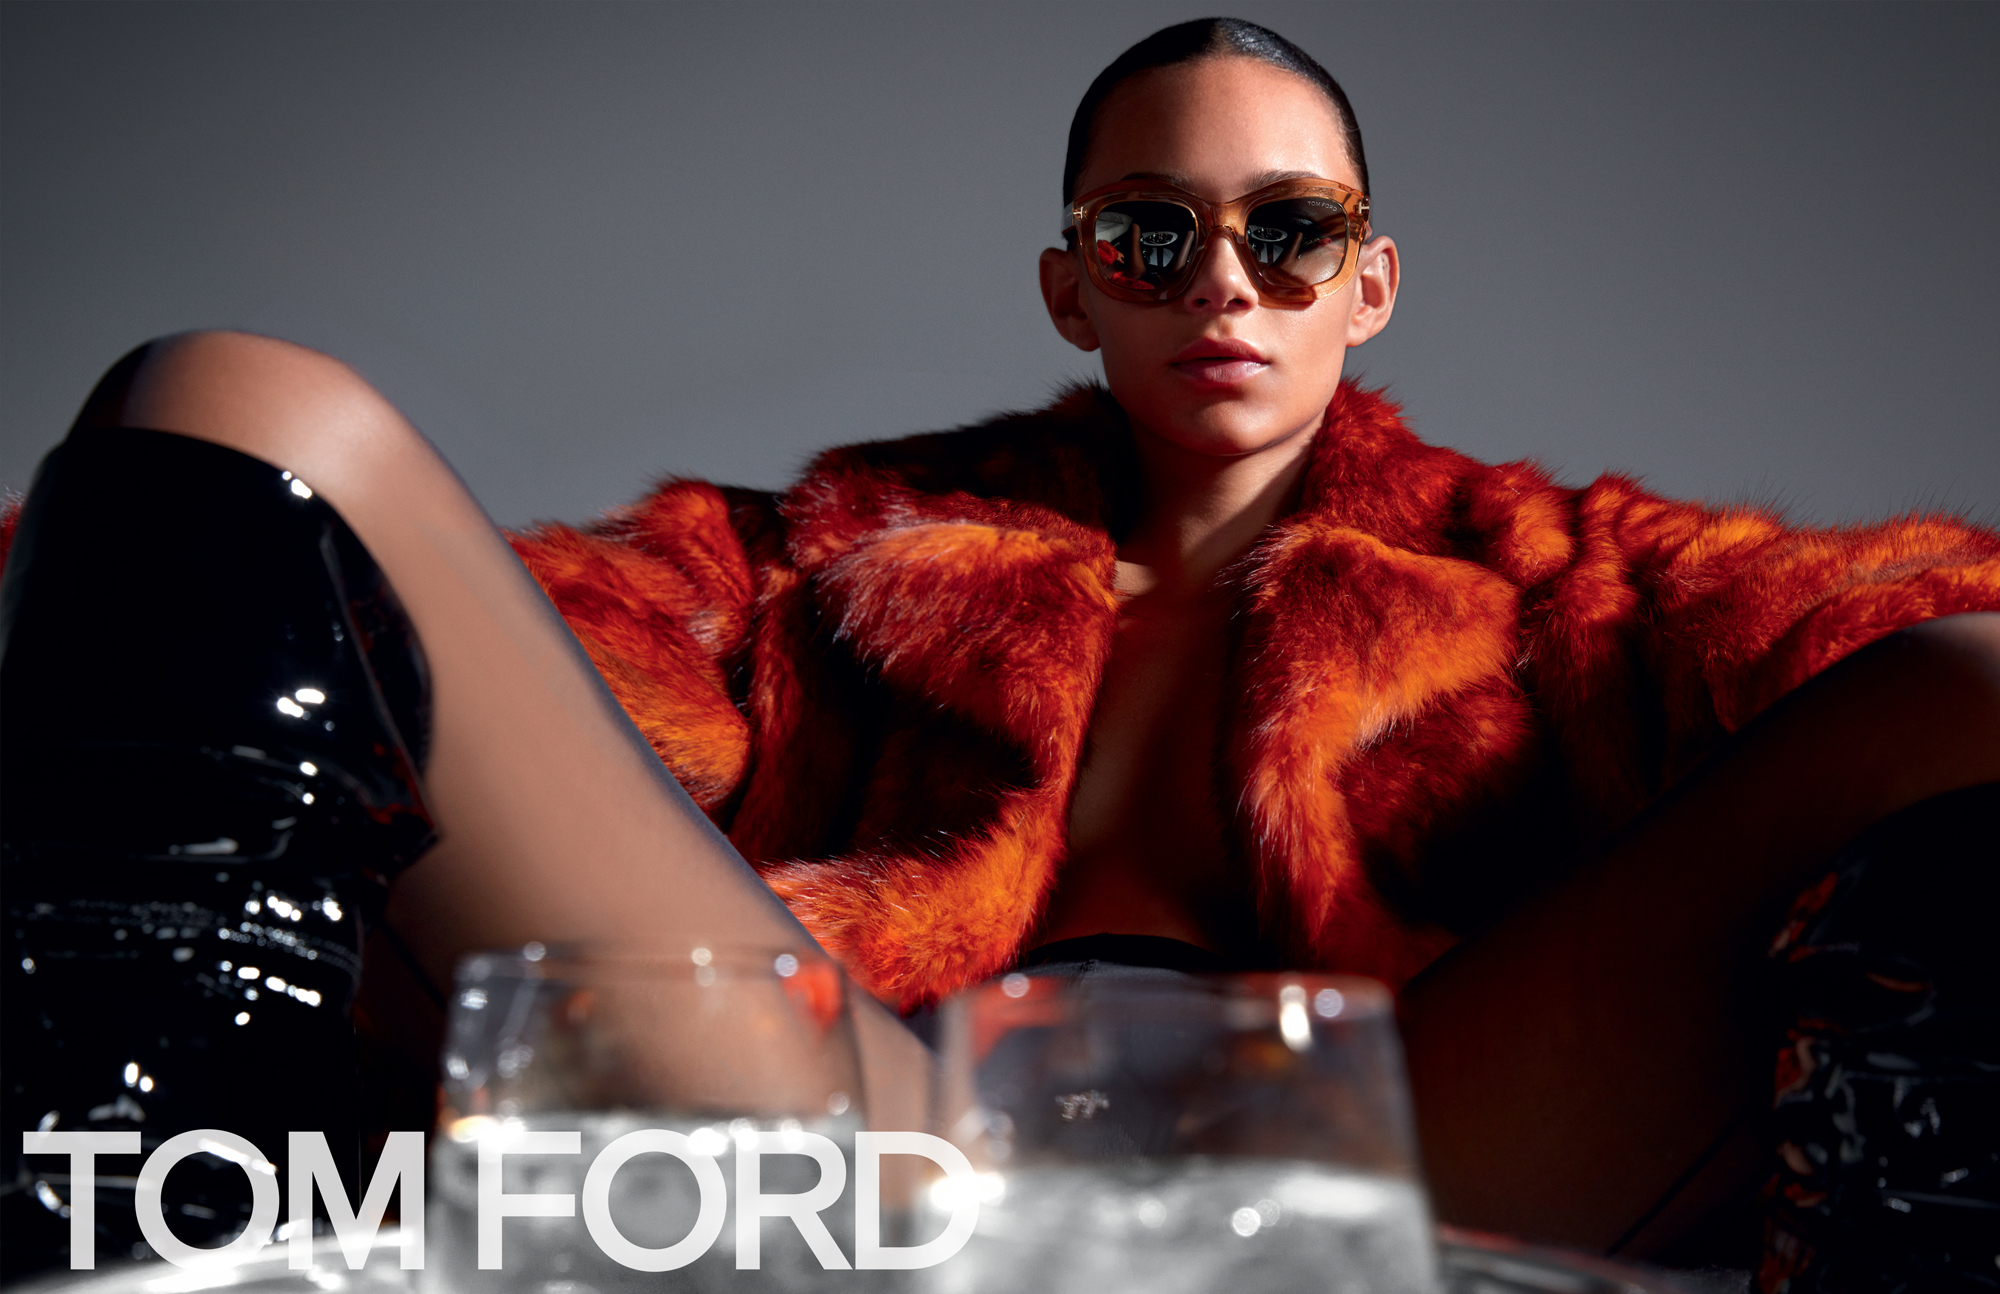 Tom-Ford-fall-2017-ad-campaign-the-impression-004